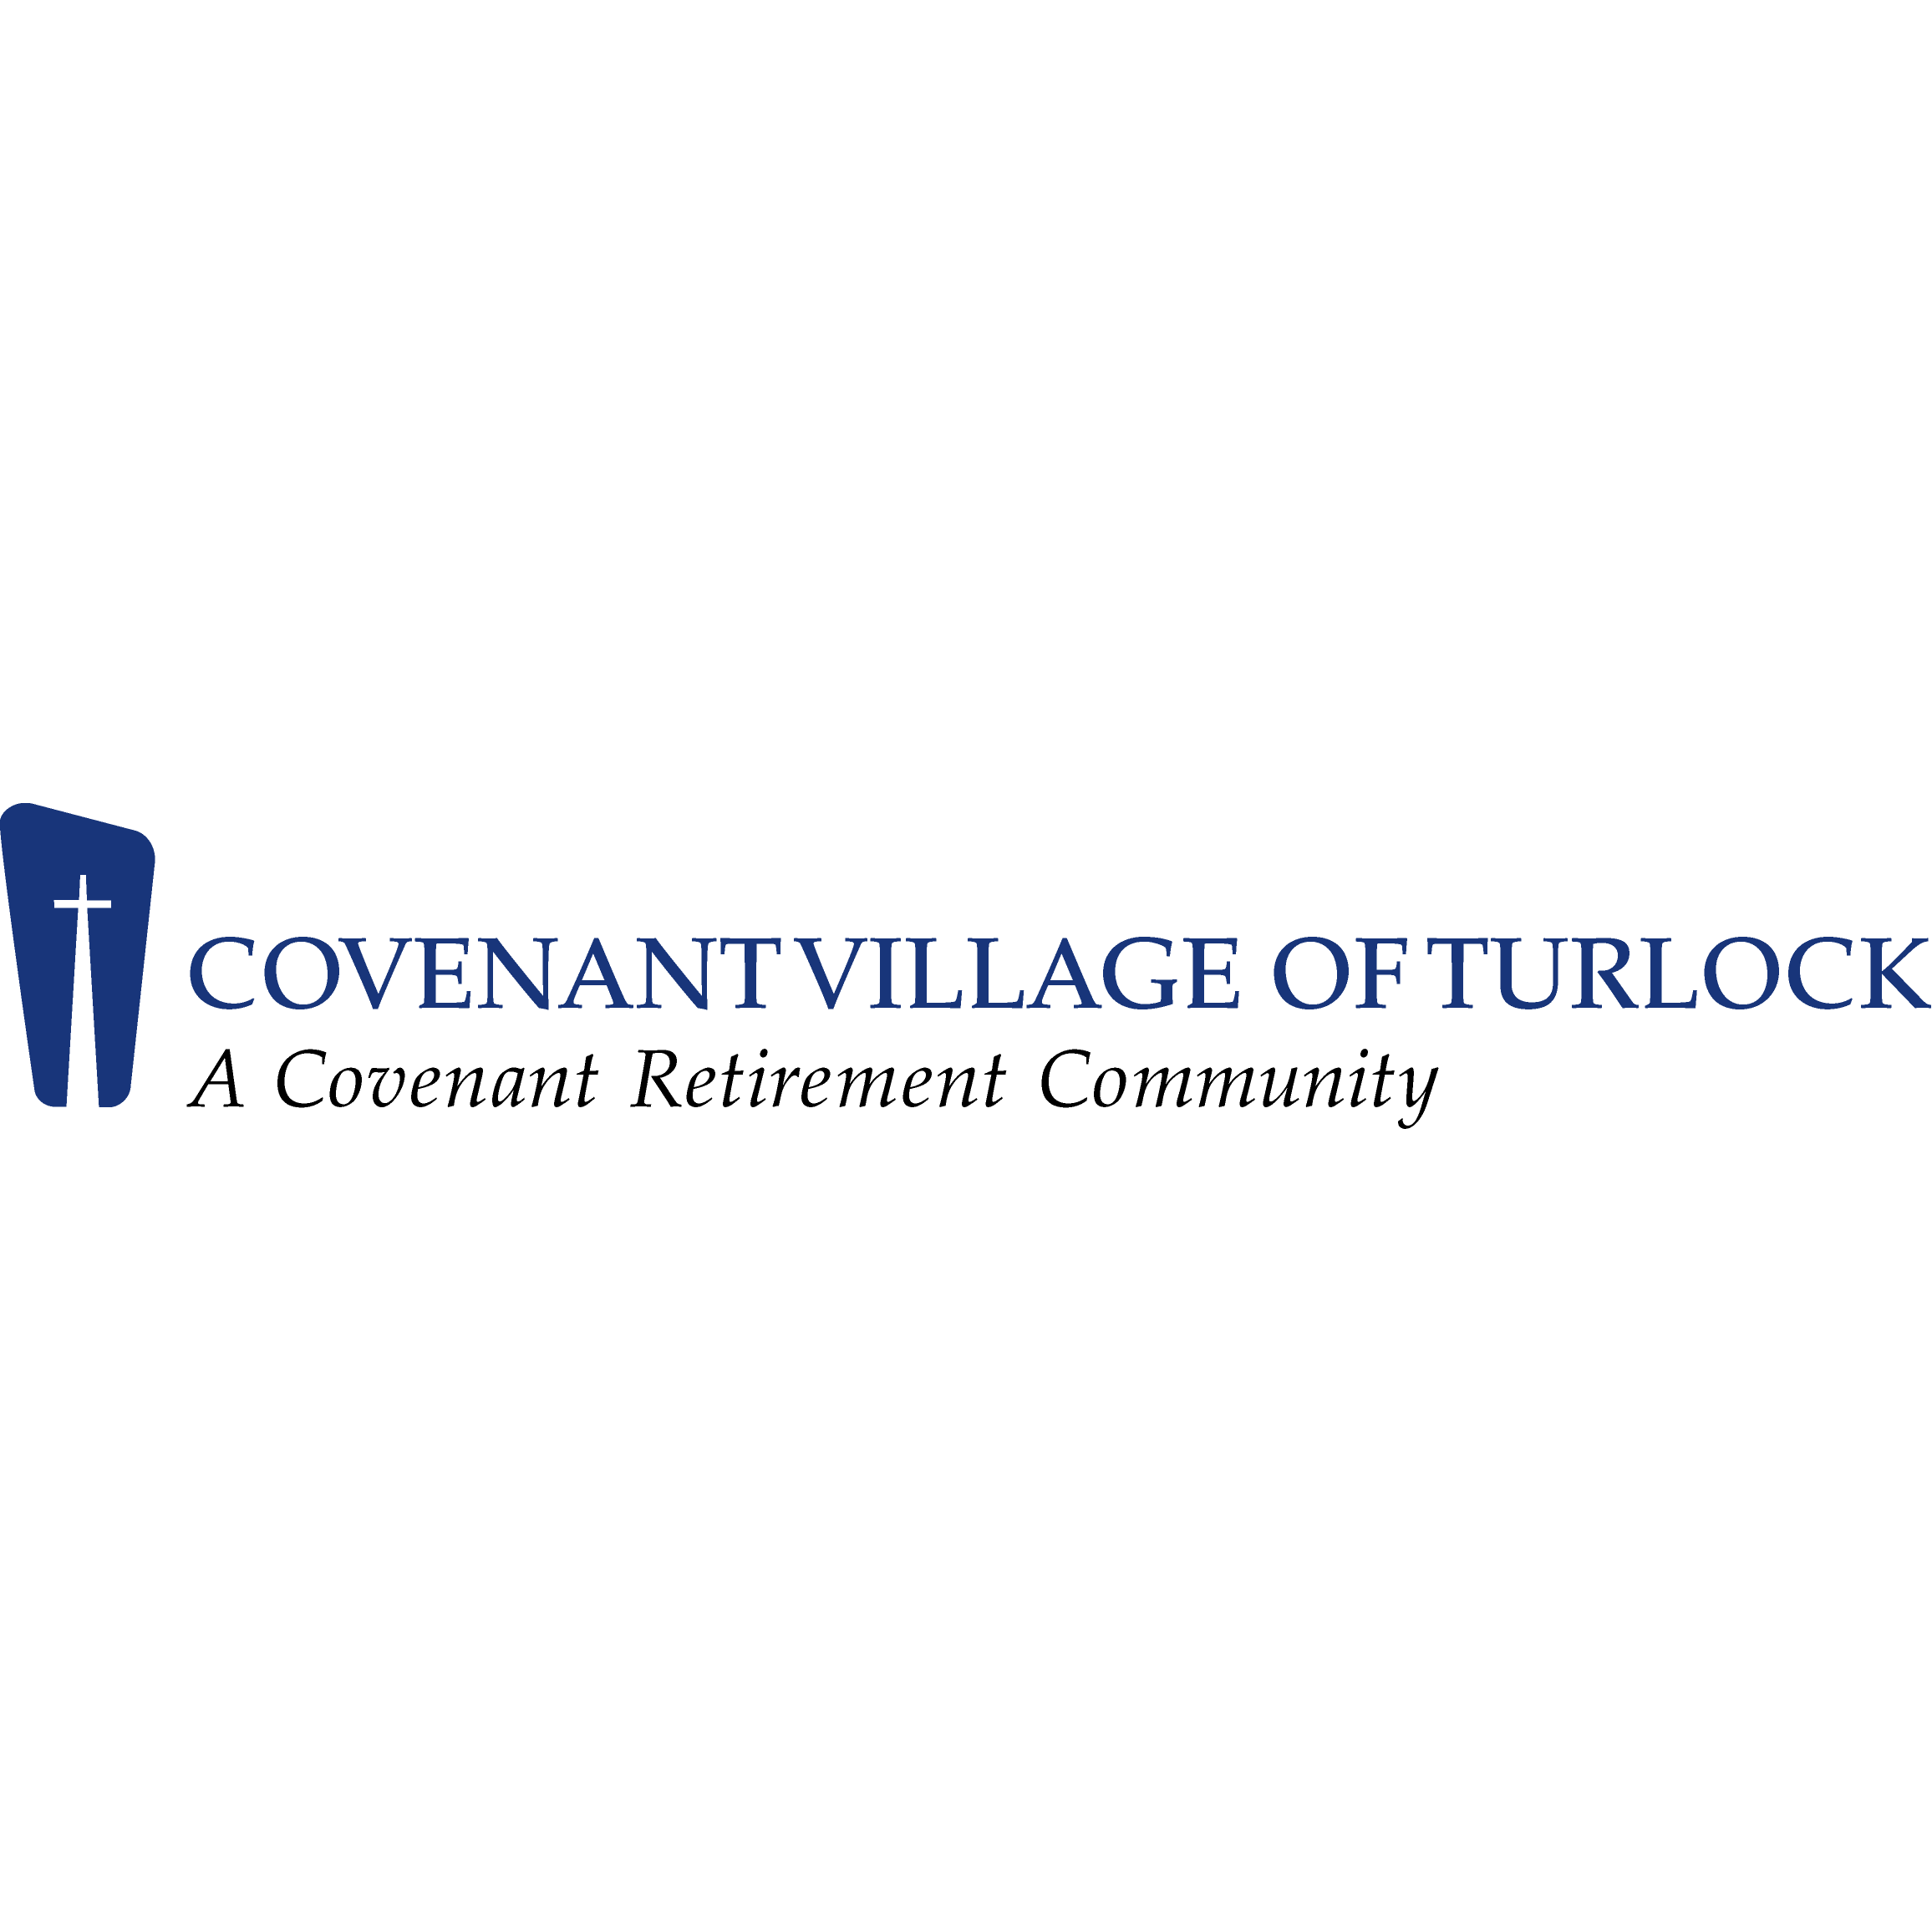 Covenant Village of Turlock